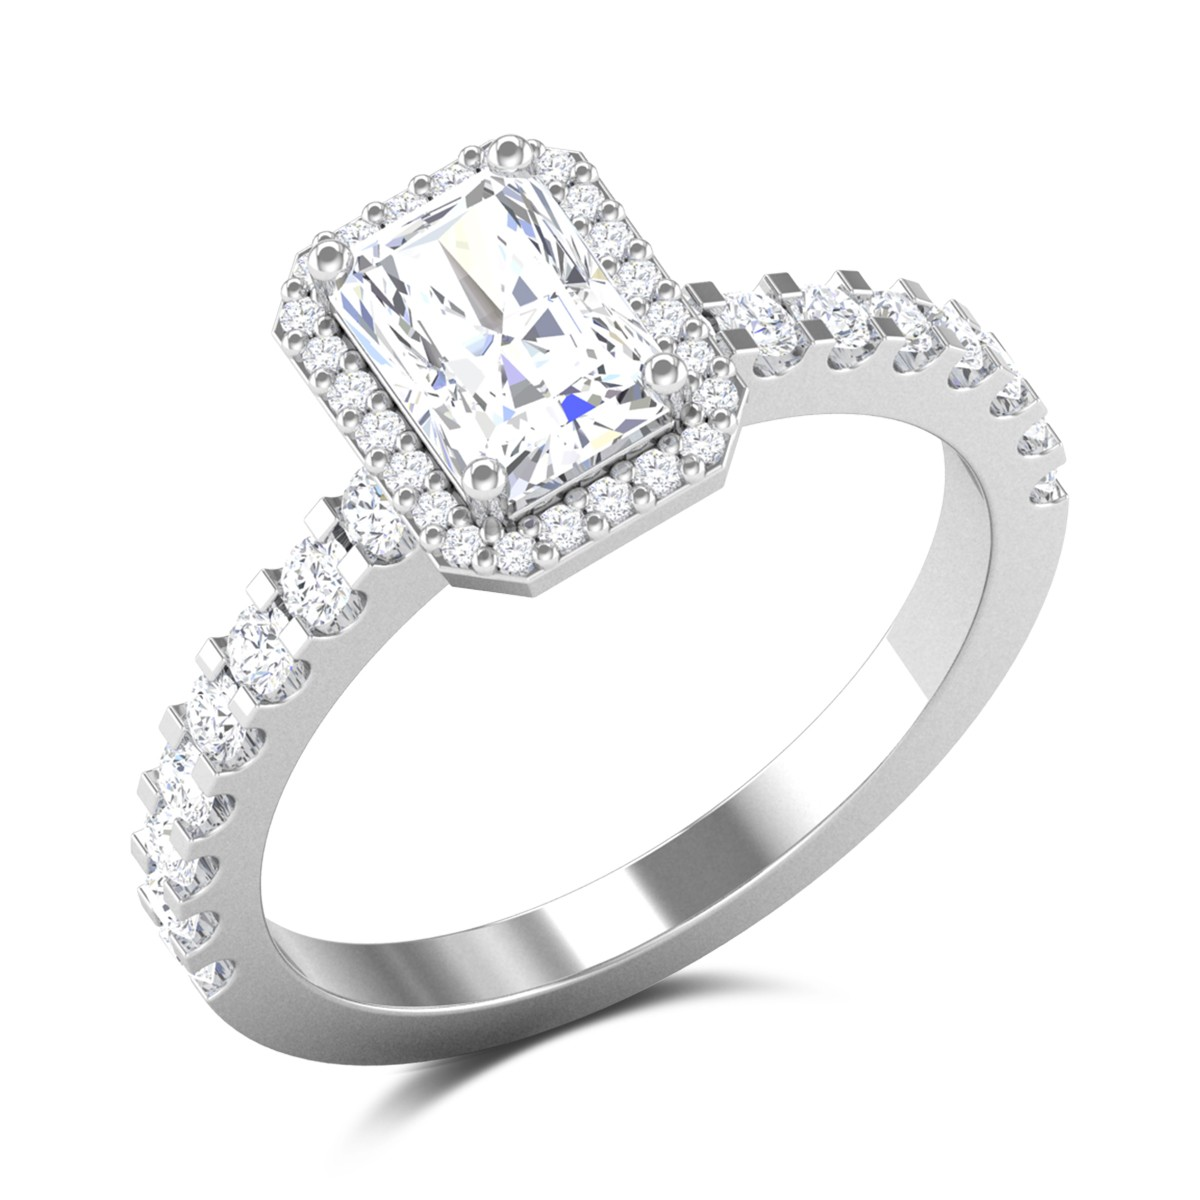 Inigo Vivid Radiant Cut Solitaire Ring